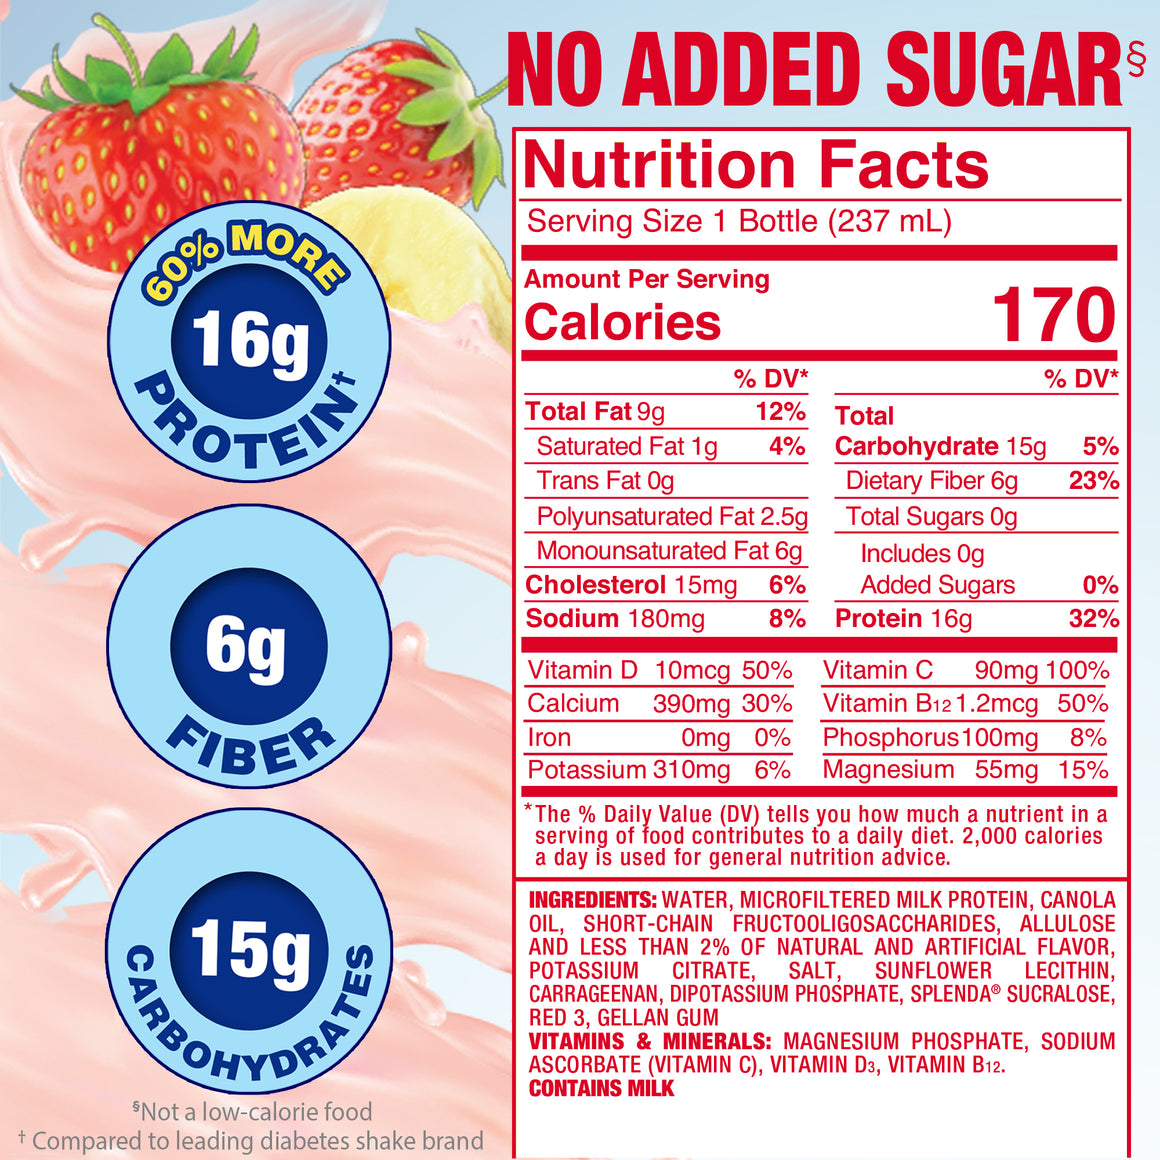 Splenda® Strawberry Banana Diabetes Care Shakes